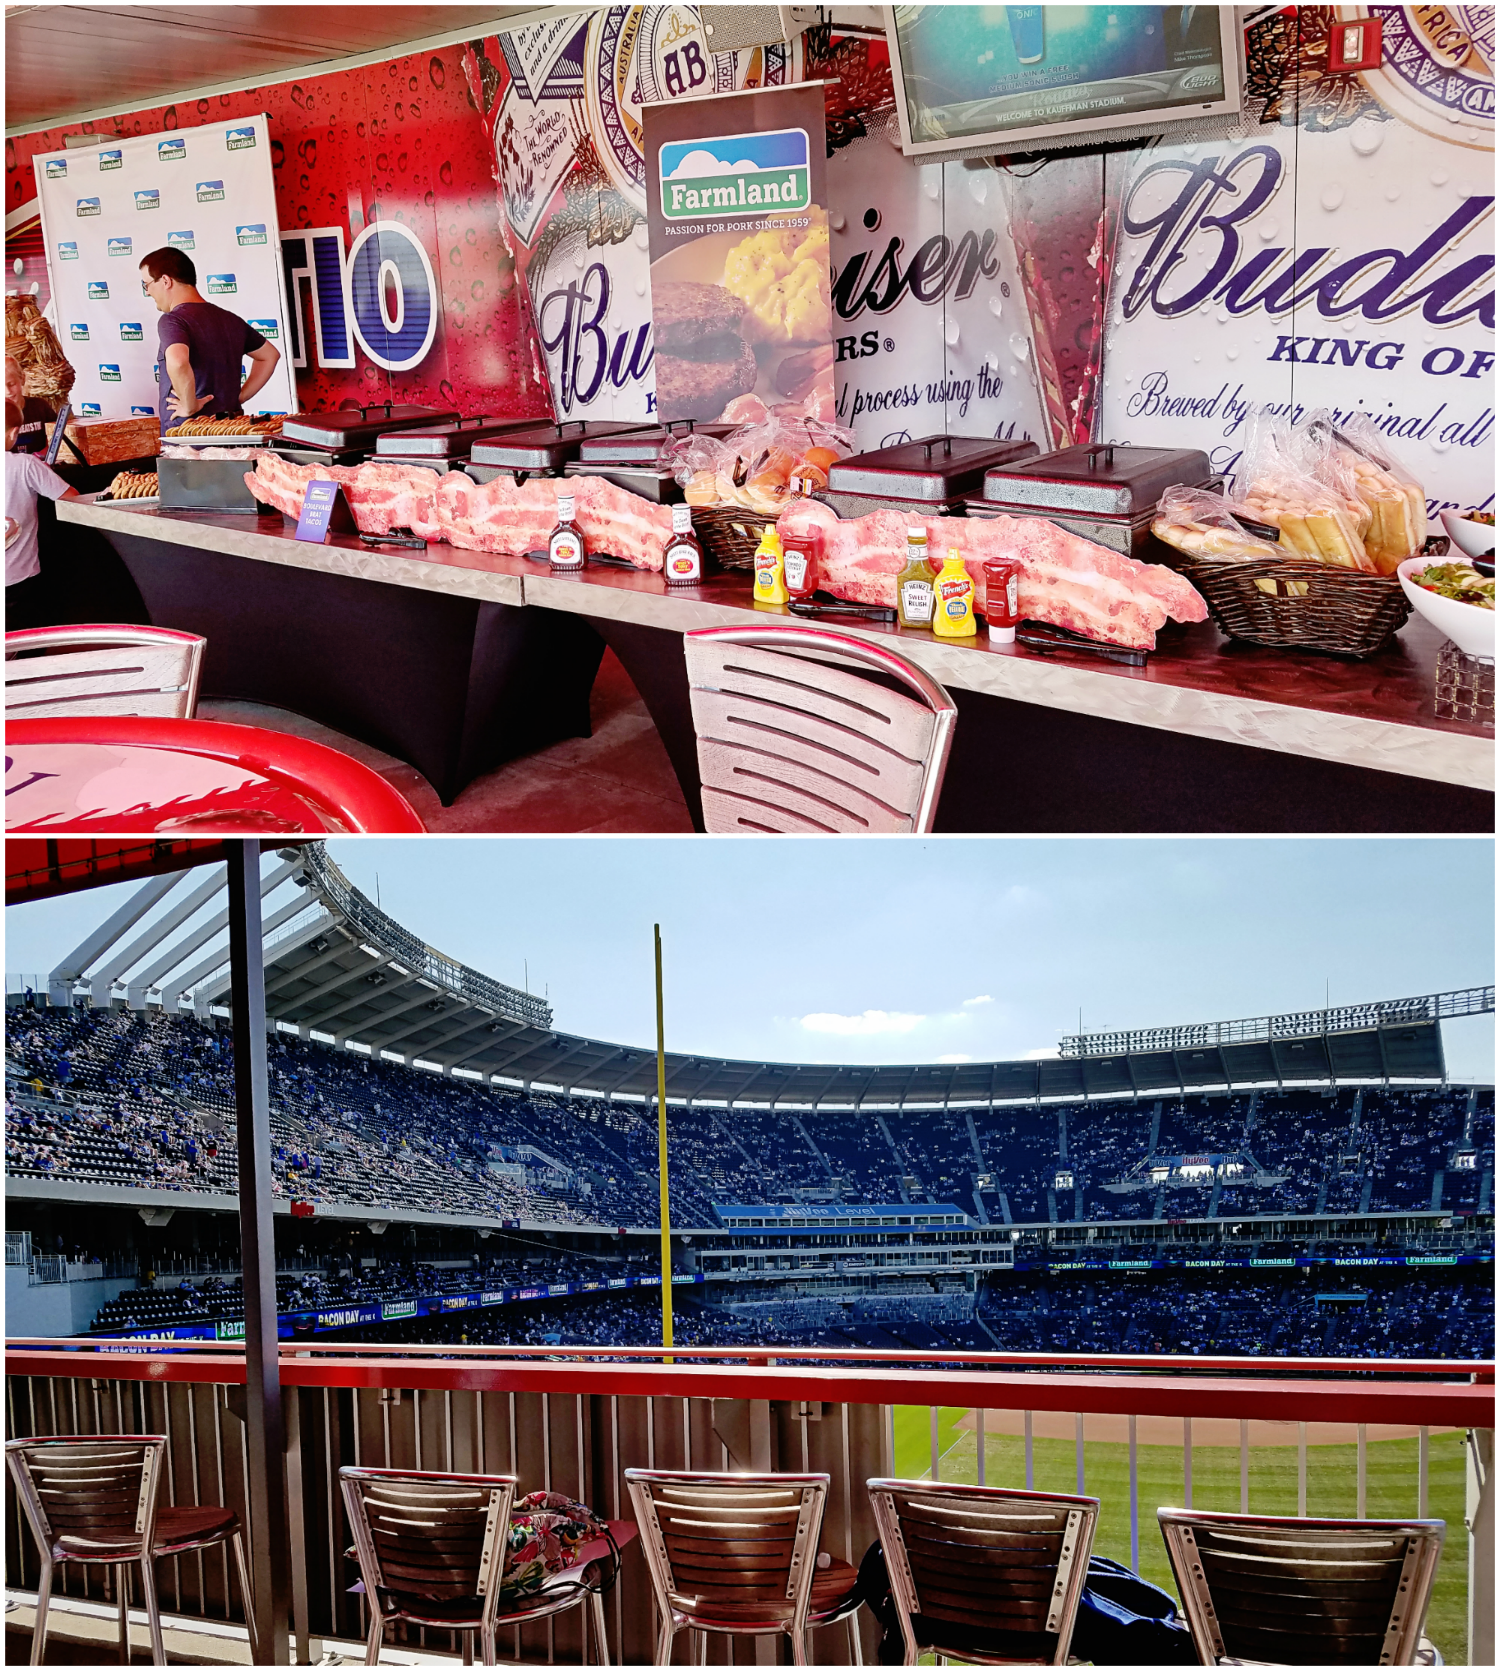 Bacon Day at the 'K' with Farmland - International Bacon Day